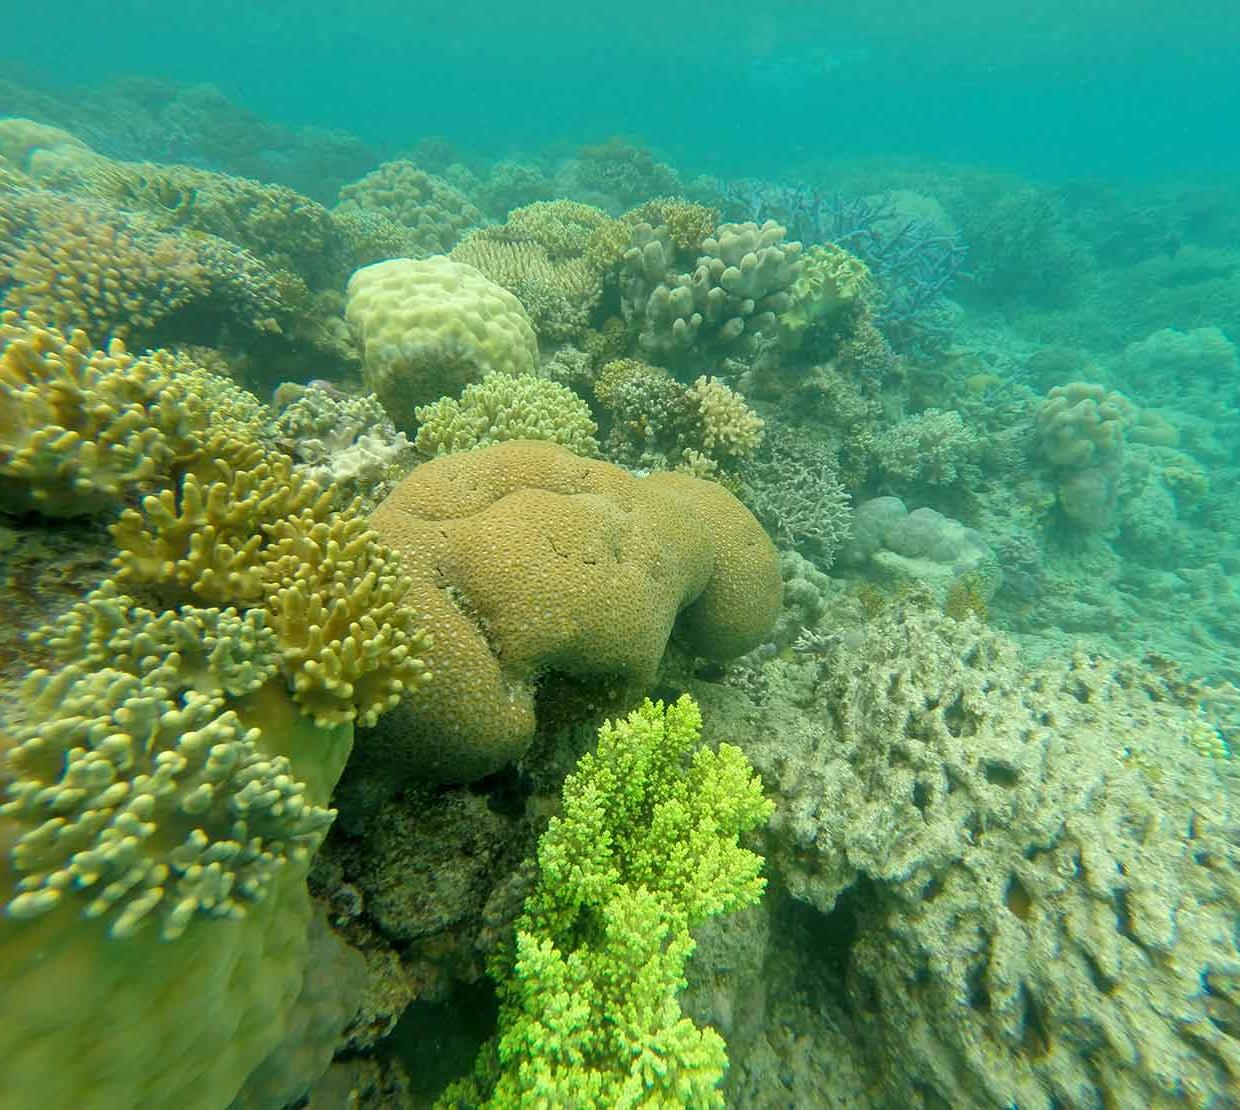 Coral reef sitting on rocks in ocean floor